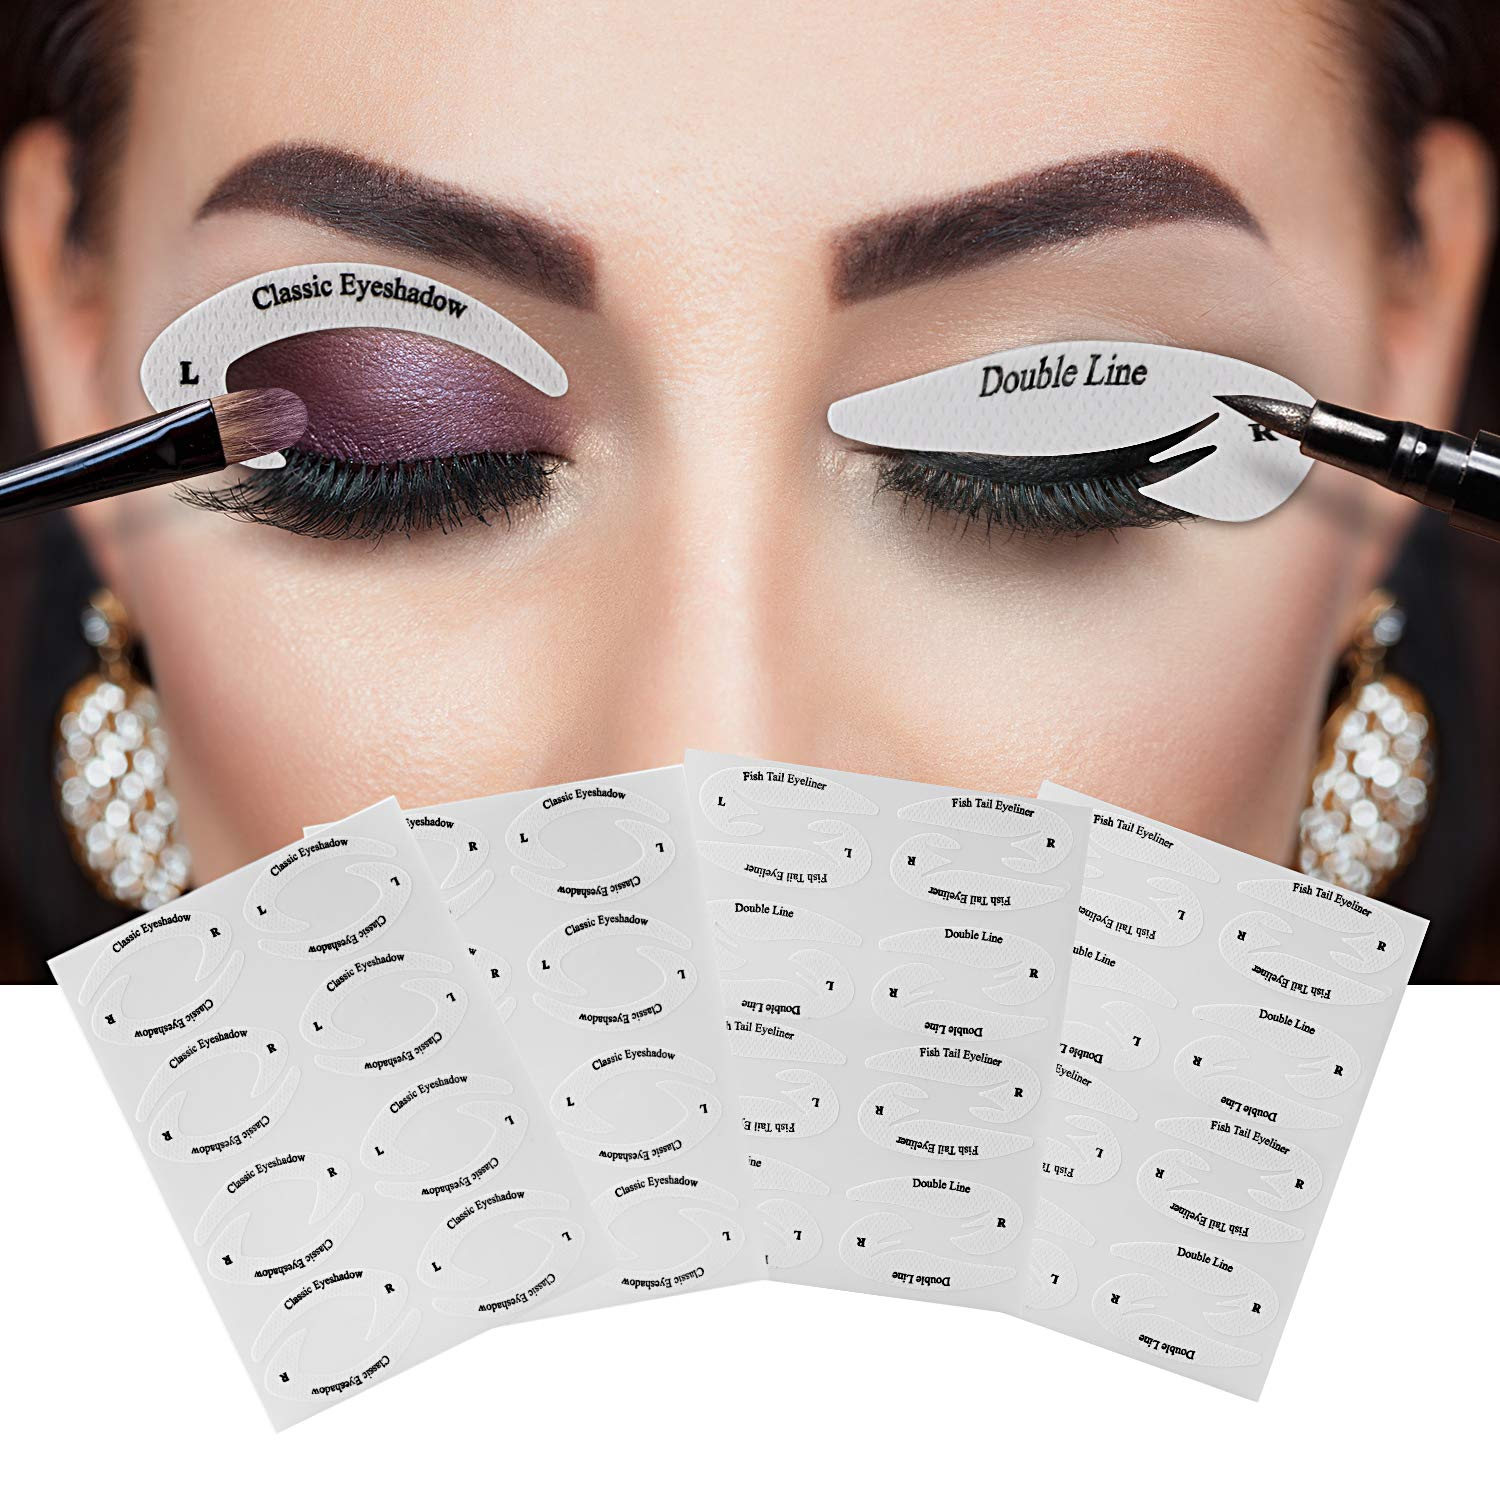 New Eye Makeup Fast Eyeliner & Eyeshadow Non-Woven Stencil Stickers, 6 Styles for Eyeliner + 4 Styles for Eyeshadow Set Profession Classic Quickly Makeup Guide Template Cosmetic Tools Torlam